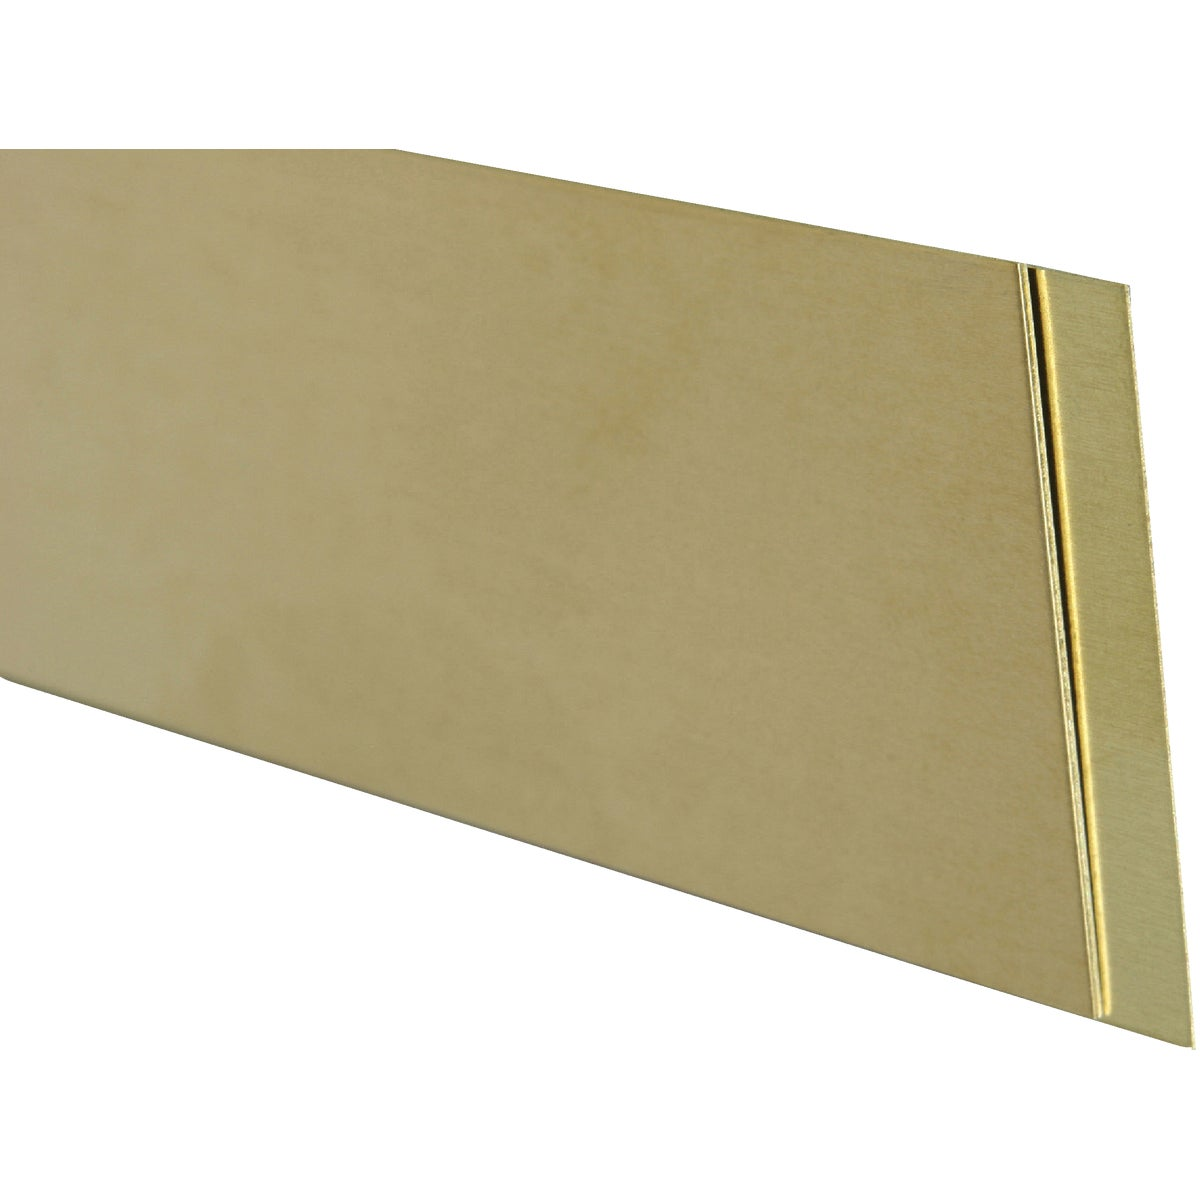 .016X1/4X12 BRASS STRIP